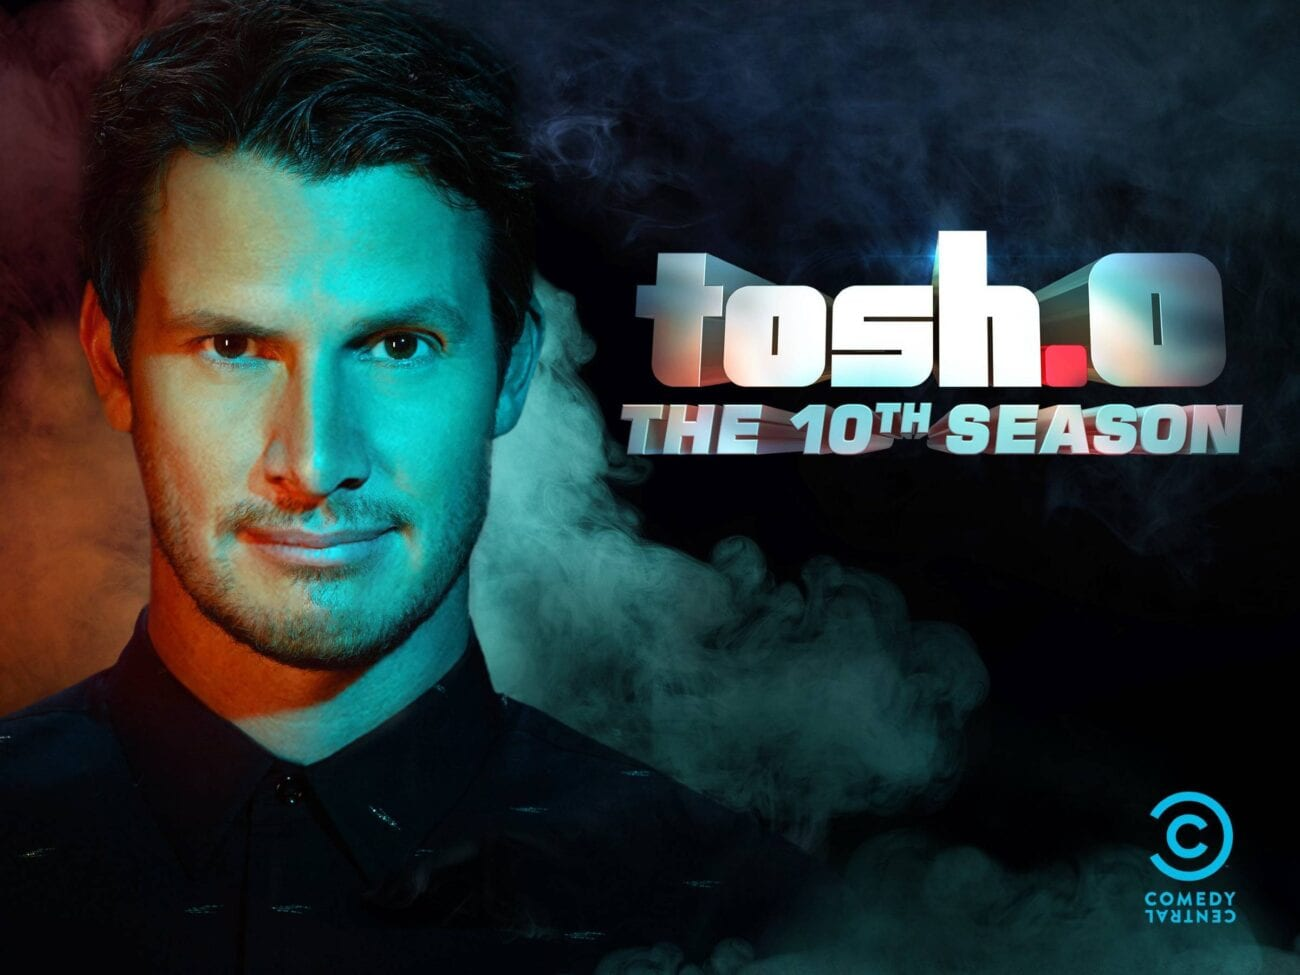 Daniel Tosh's comedy show 'Tosh.0' may be cursed. Here are the guests who died since being on his show.